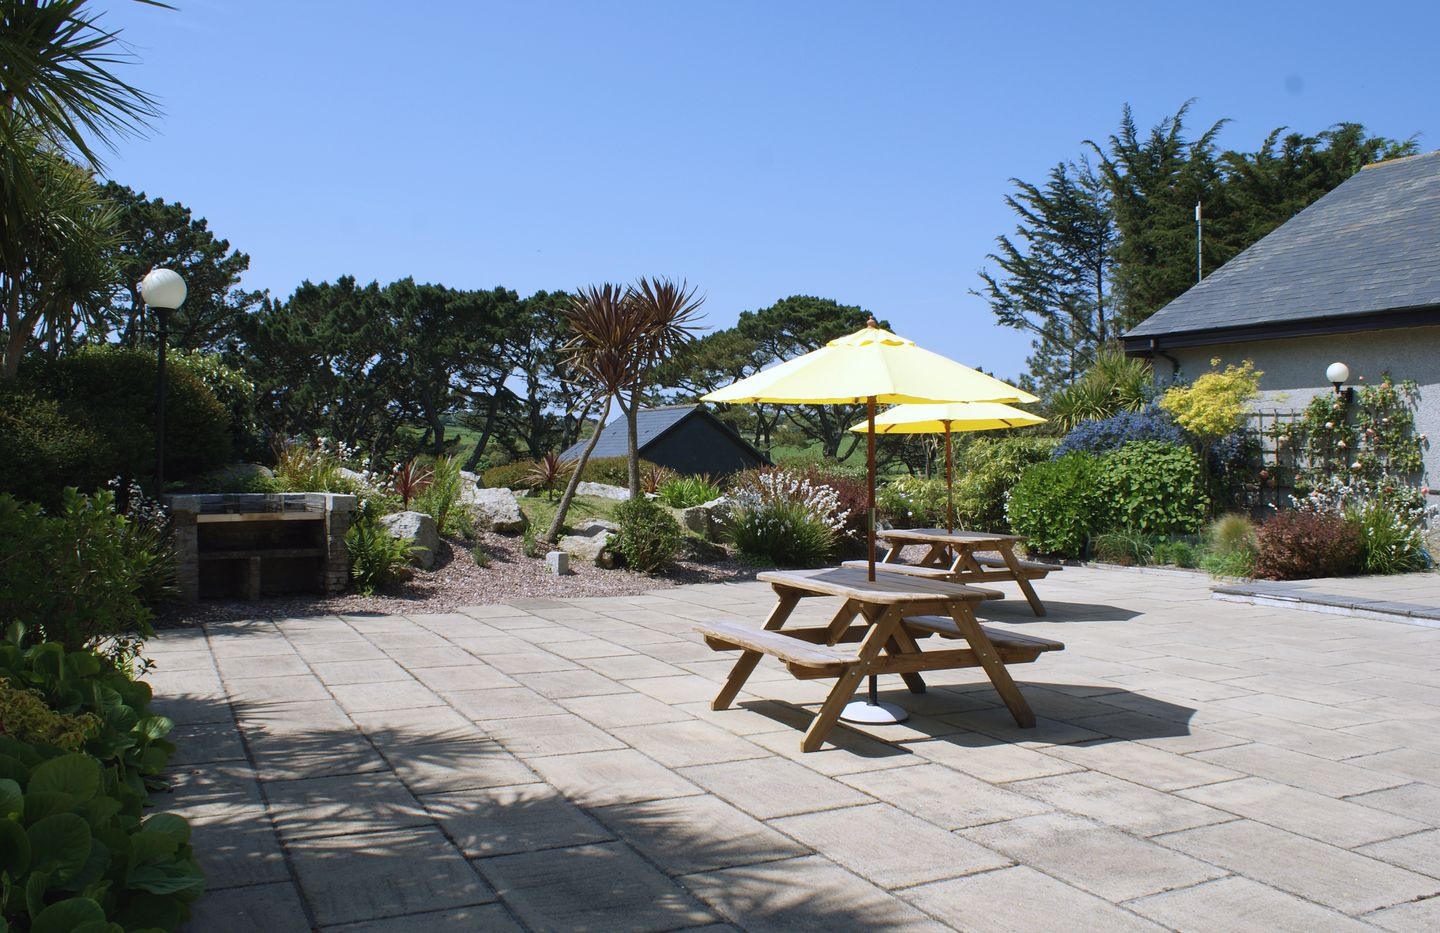 Duck Bay Maenporth Barbecue Area And Tables